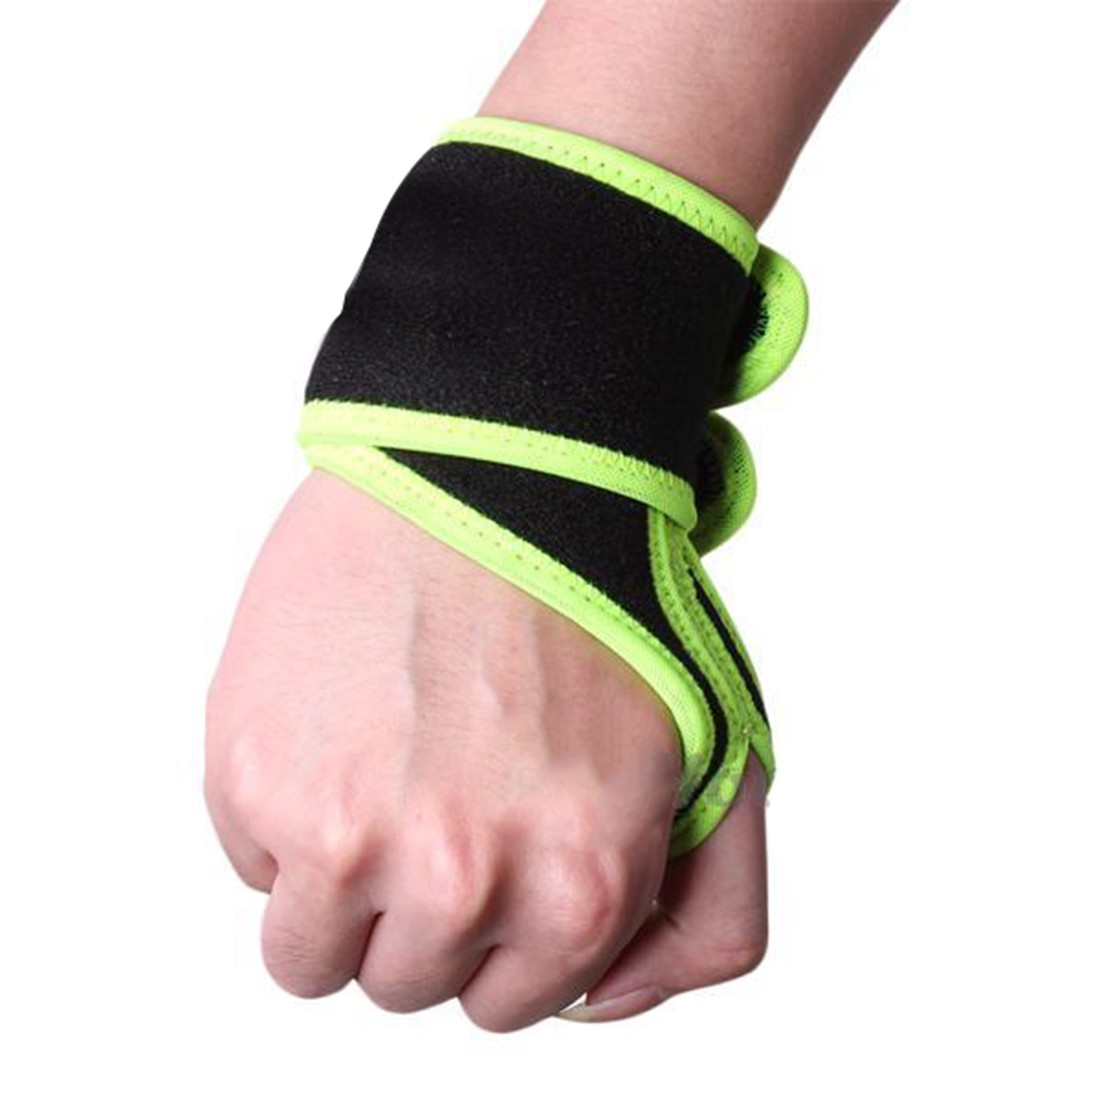 Reversible Sports Wrist Brace Wrist Support Wrap for Badminton Tennis Weightlifting Basketball